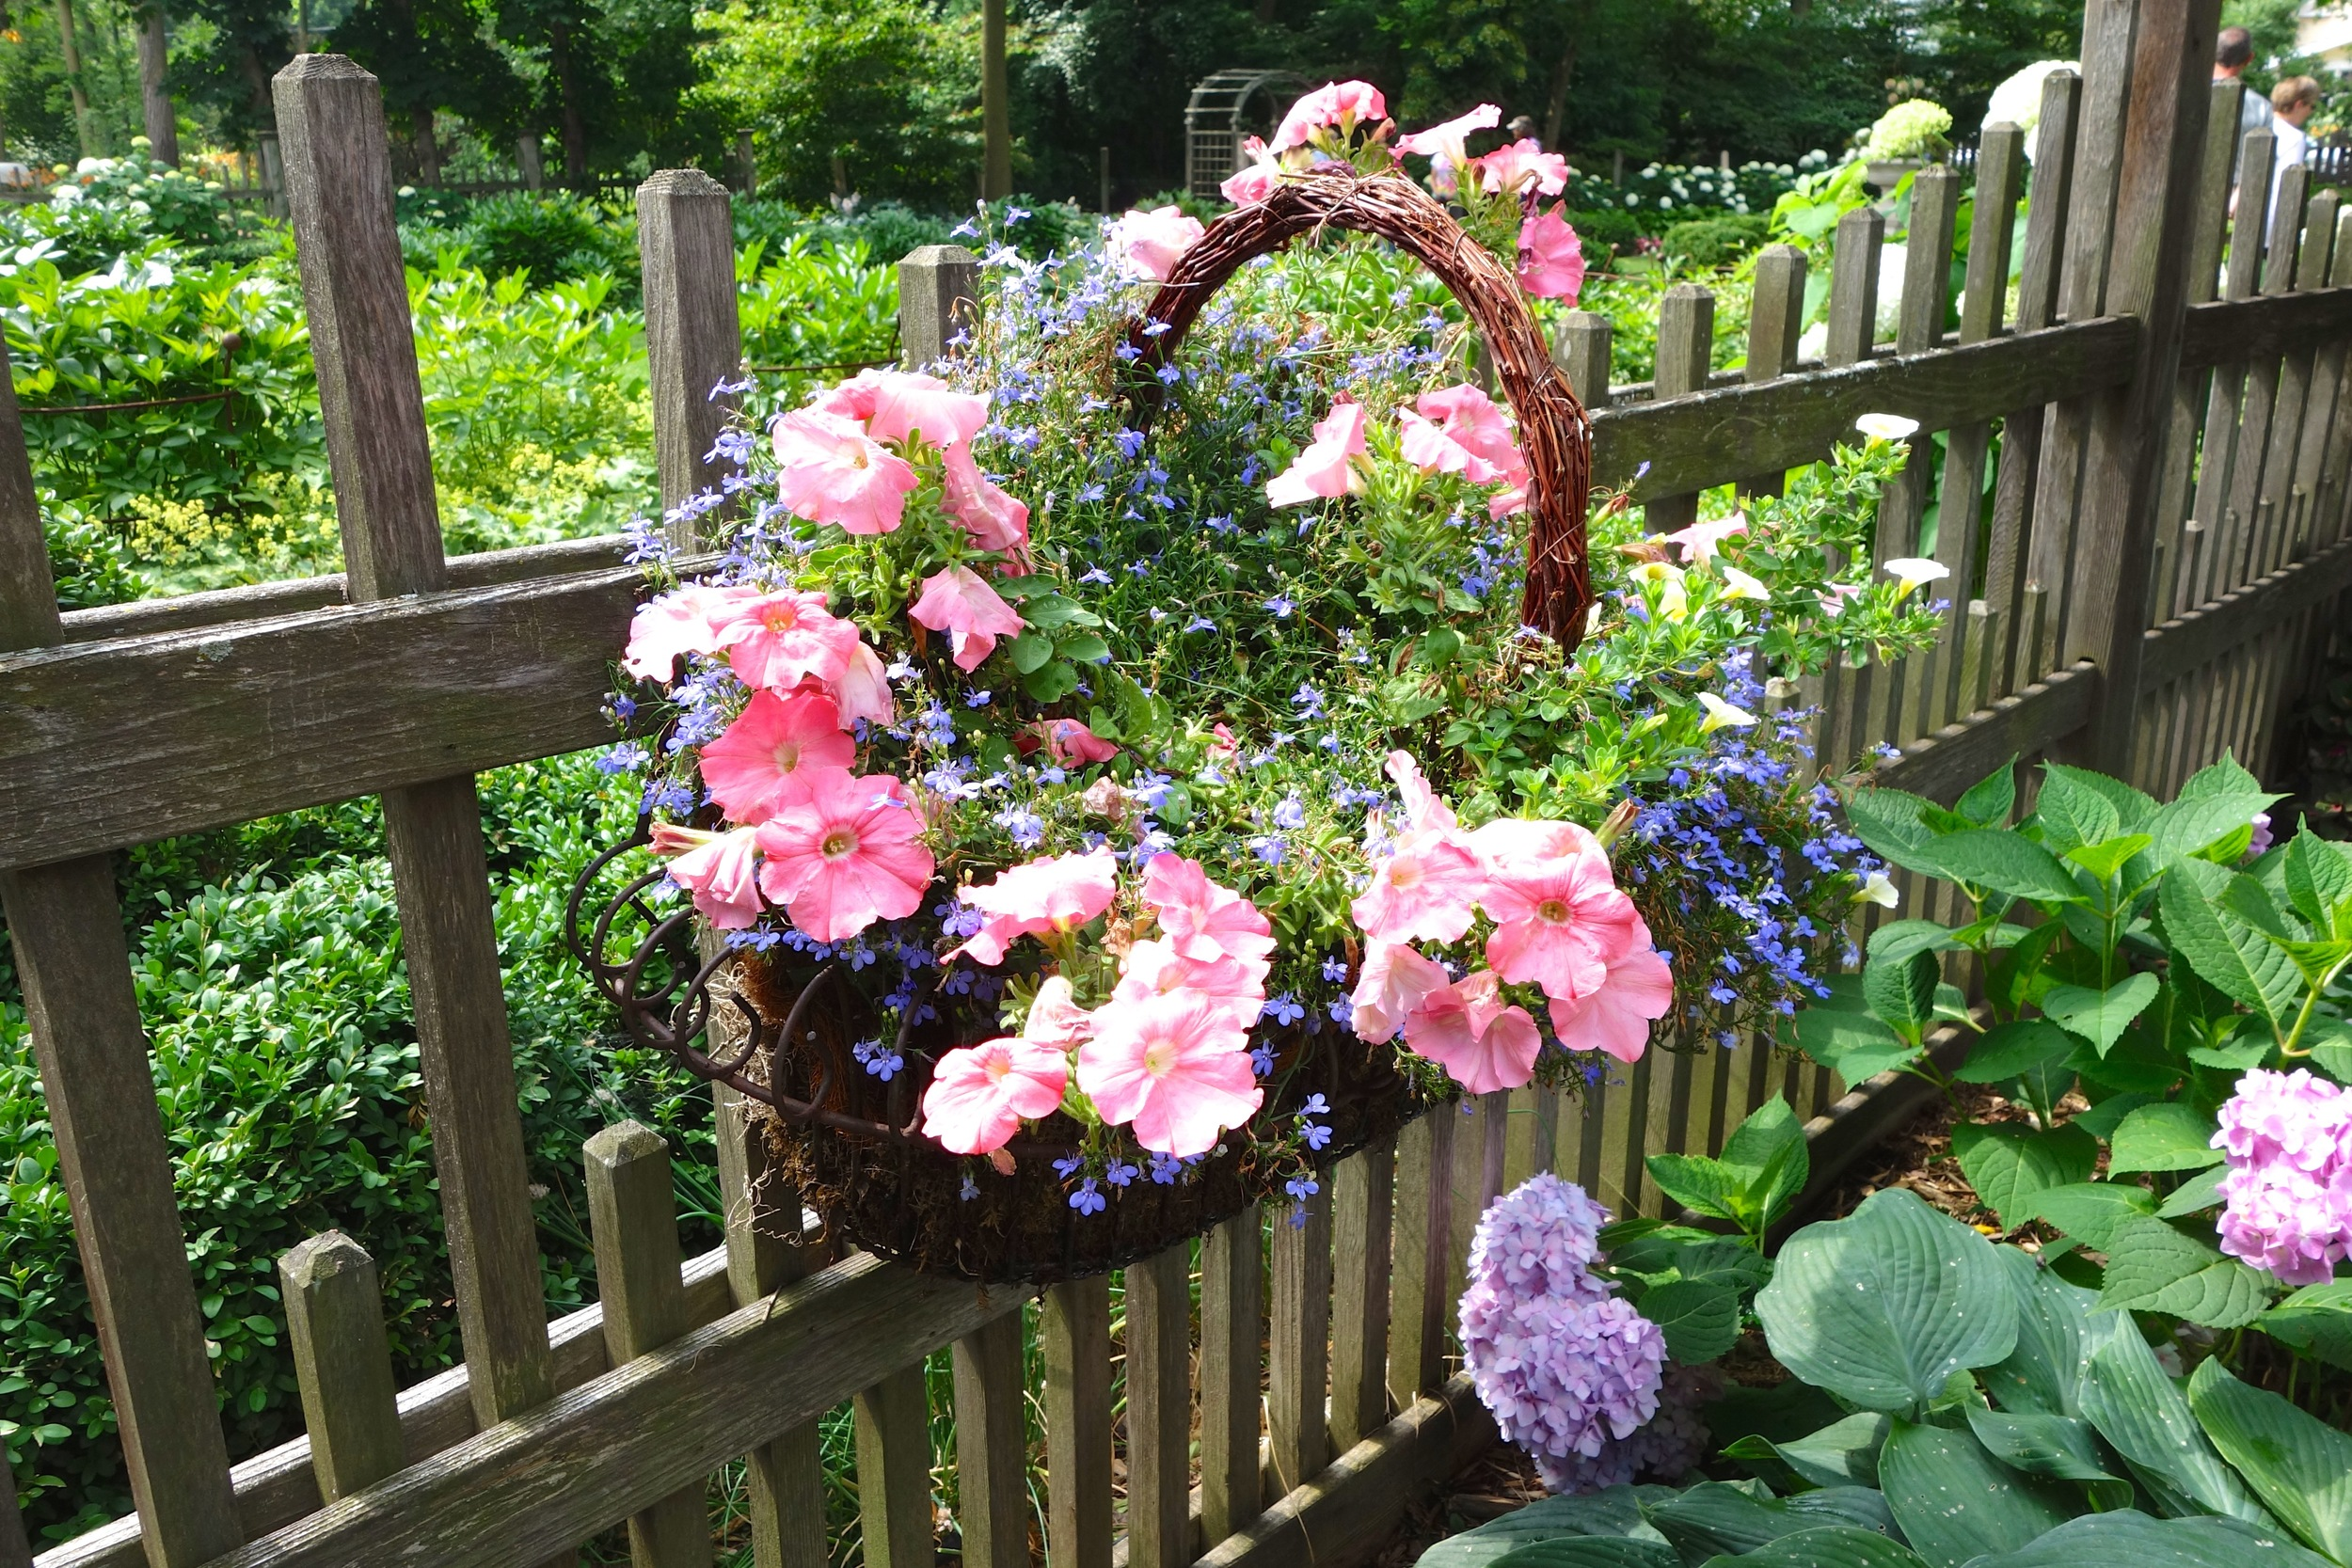 A basket of flowers hangs on the arts and crafts style wooden fence that Catherine designed.